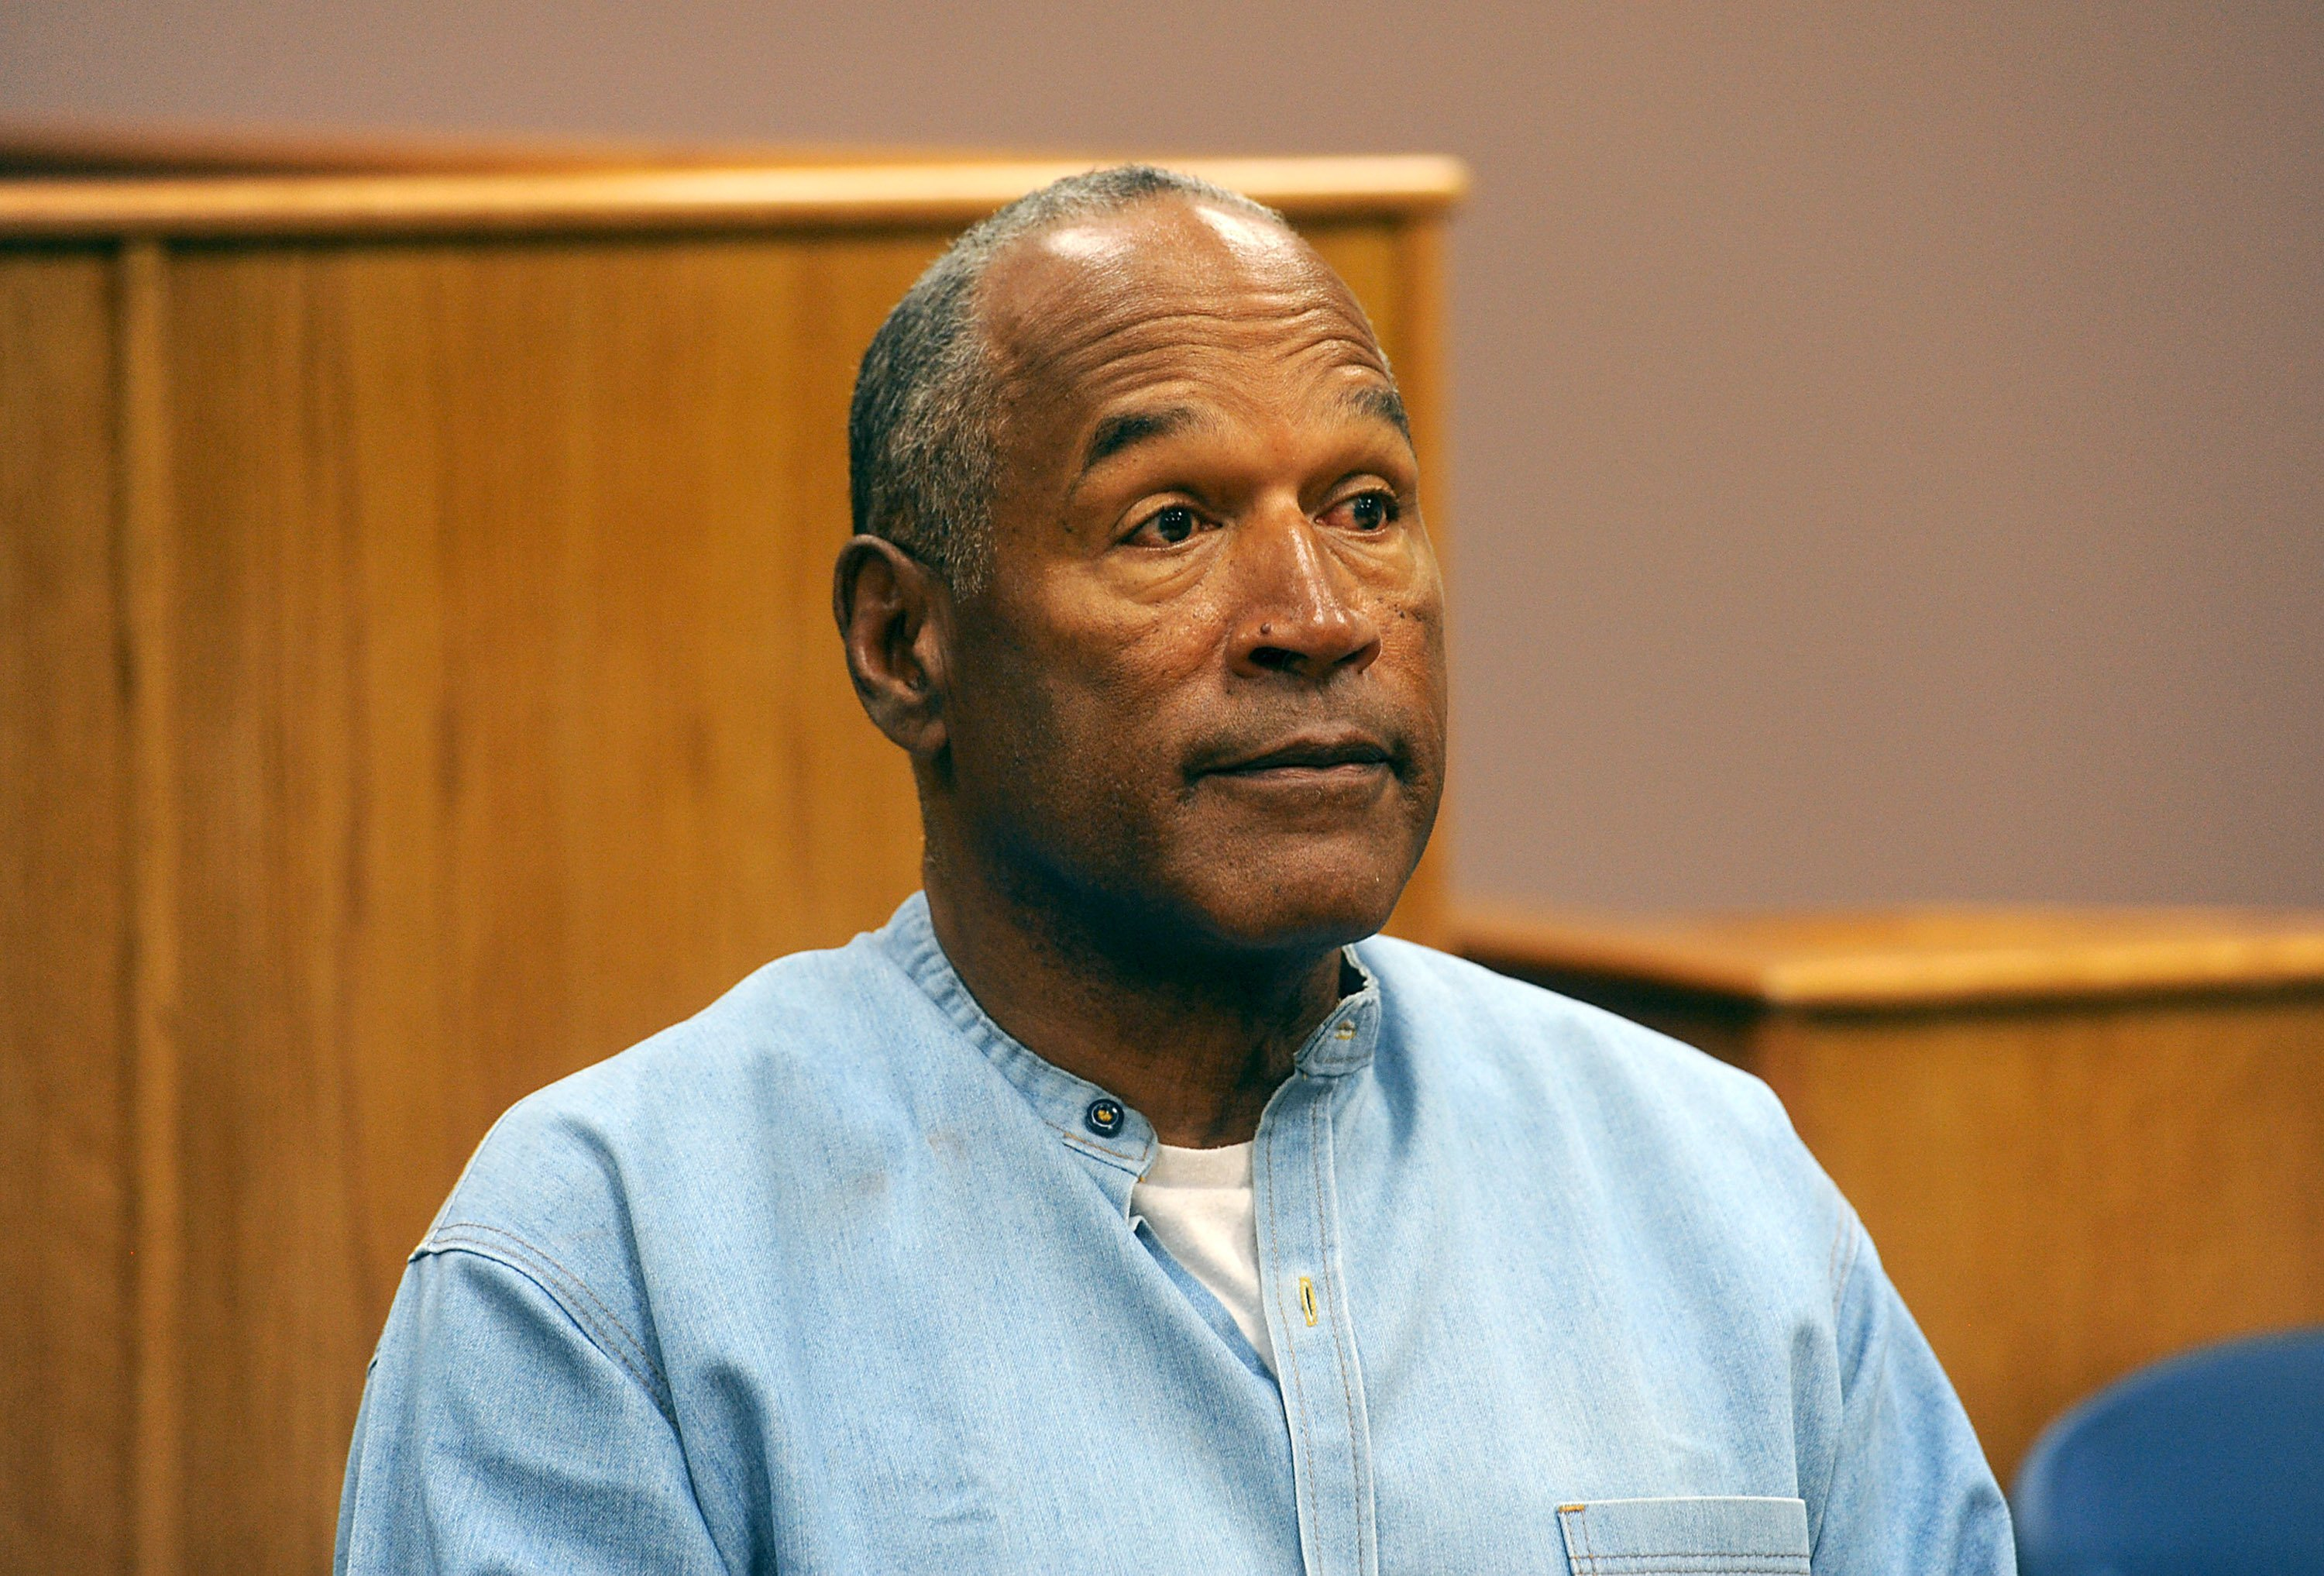 O.J. Simpson attends a parole hearing at Lovelock Correctional Center July 20, 2017. | Photo: GettyImages